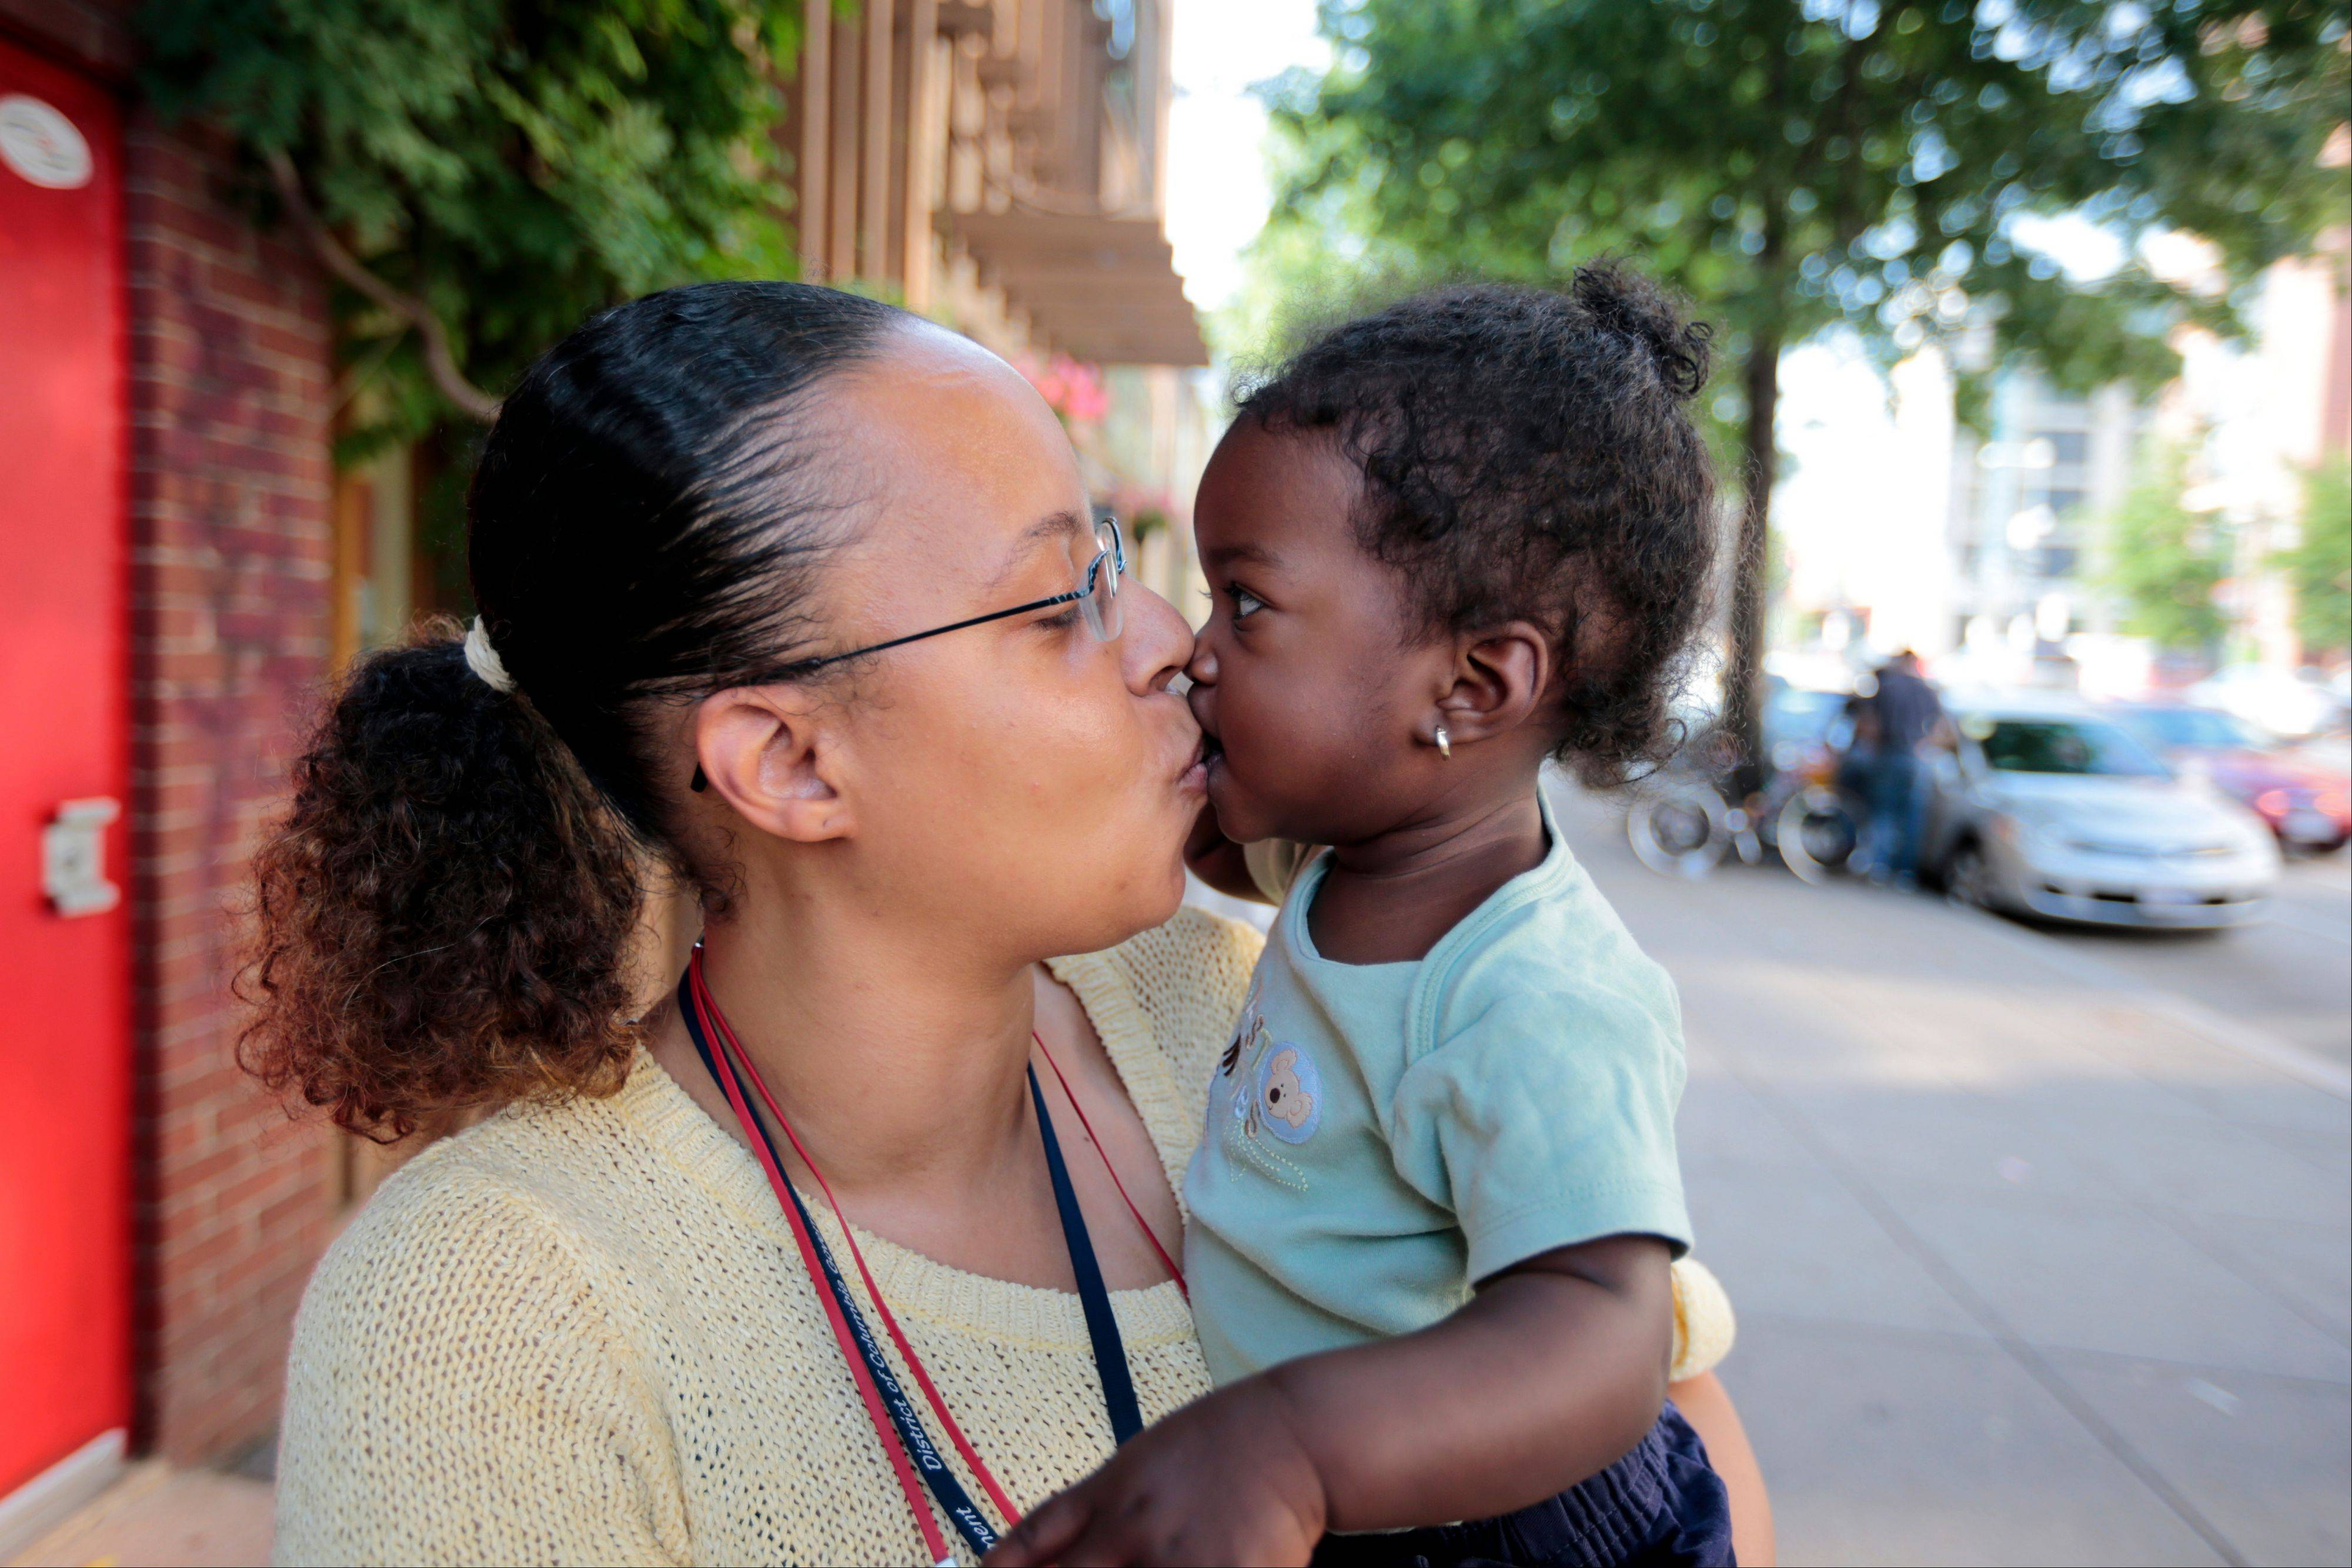 Ke�sha Scrivner, left, kisses her daughter as they pose for a photograph after picking up her daughter Ka�Lani Scrivner, 1, from day care, Tuesday, July 9, 2013, in Washington. Once on welfare, Scrivner worked her way off by studying early childhood education and landing a full-time job for the District of Columbia�s education superintendent. She sees education as the path to a better life for herself and all five of her children, pushing them to finish high school and continue with college or a trade school.